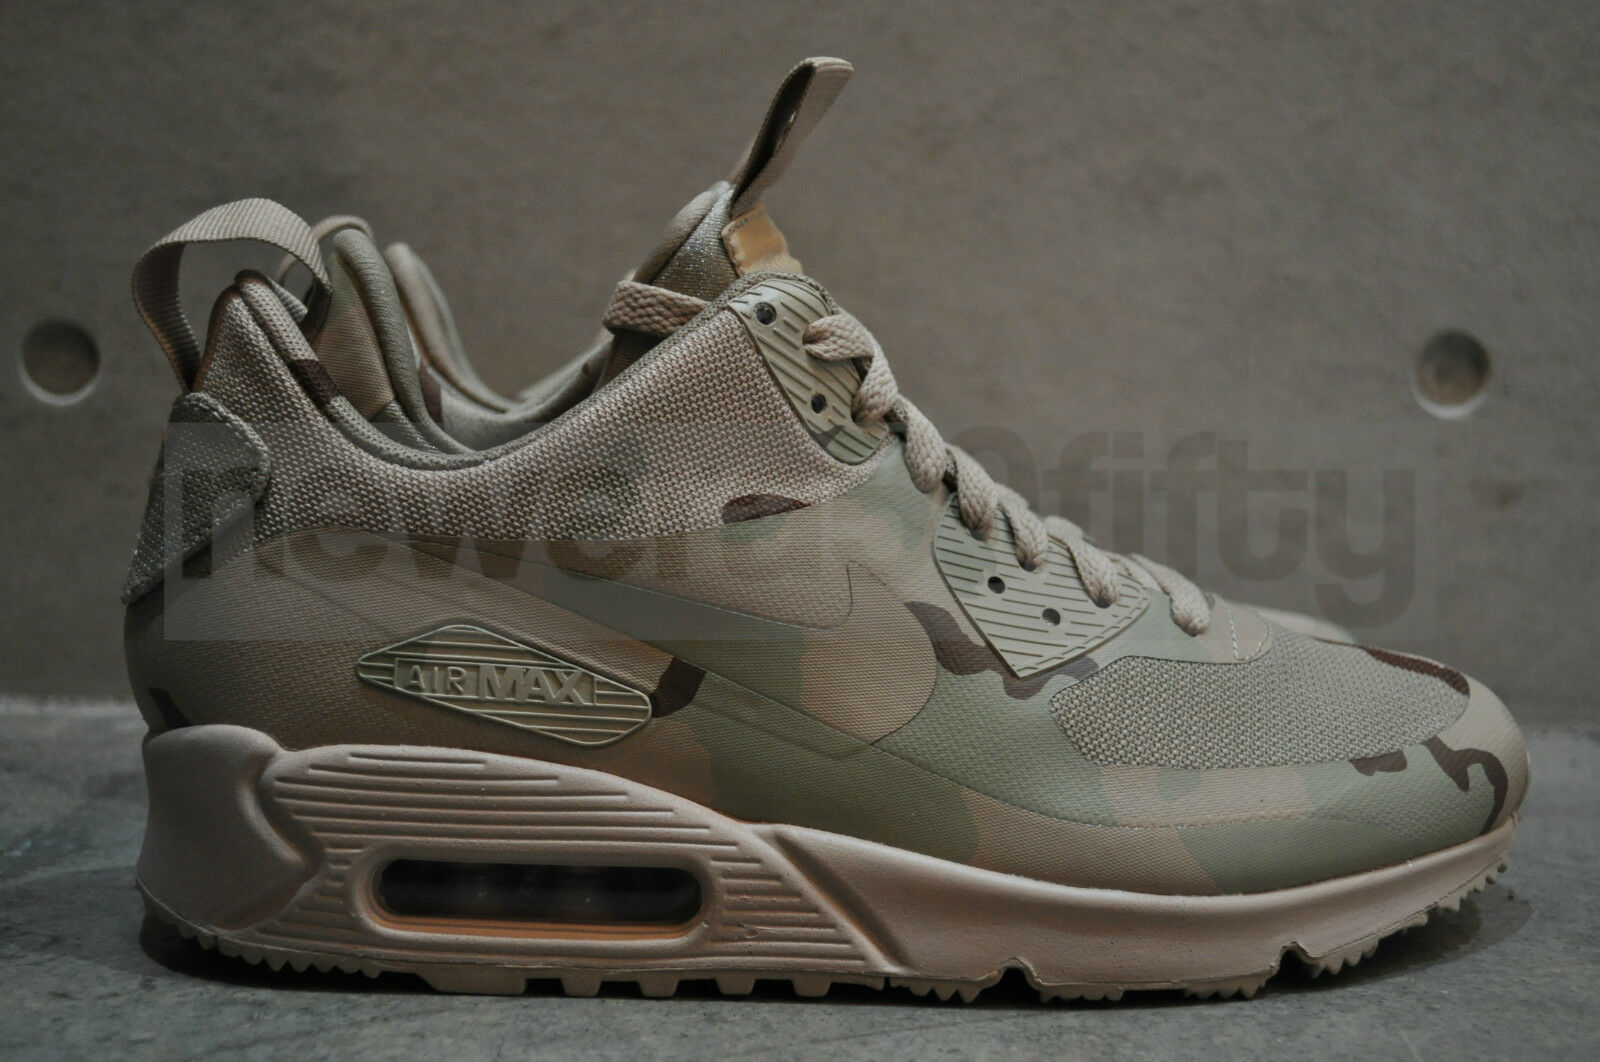 chaussures de sport d16b0 52f39 Details about Nike Air Max 90 Camo Sneakerboot MC SP 'USA' -  Desert/Desert-Desert